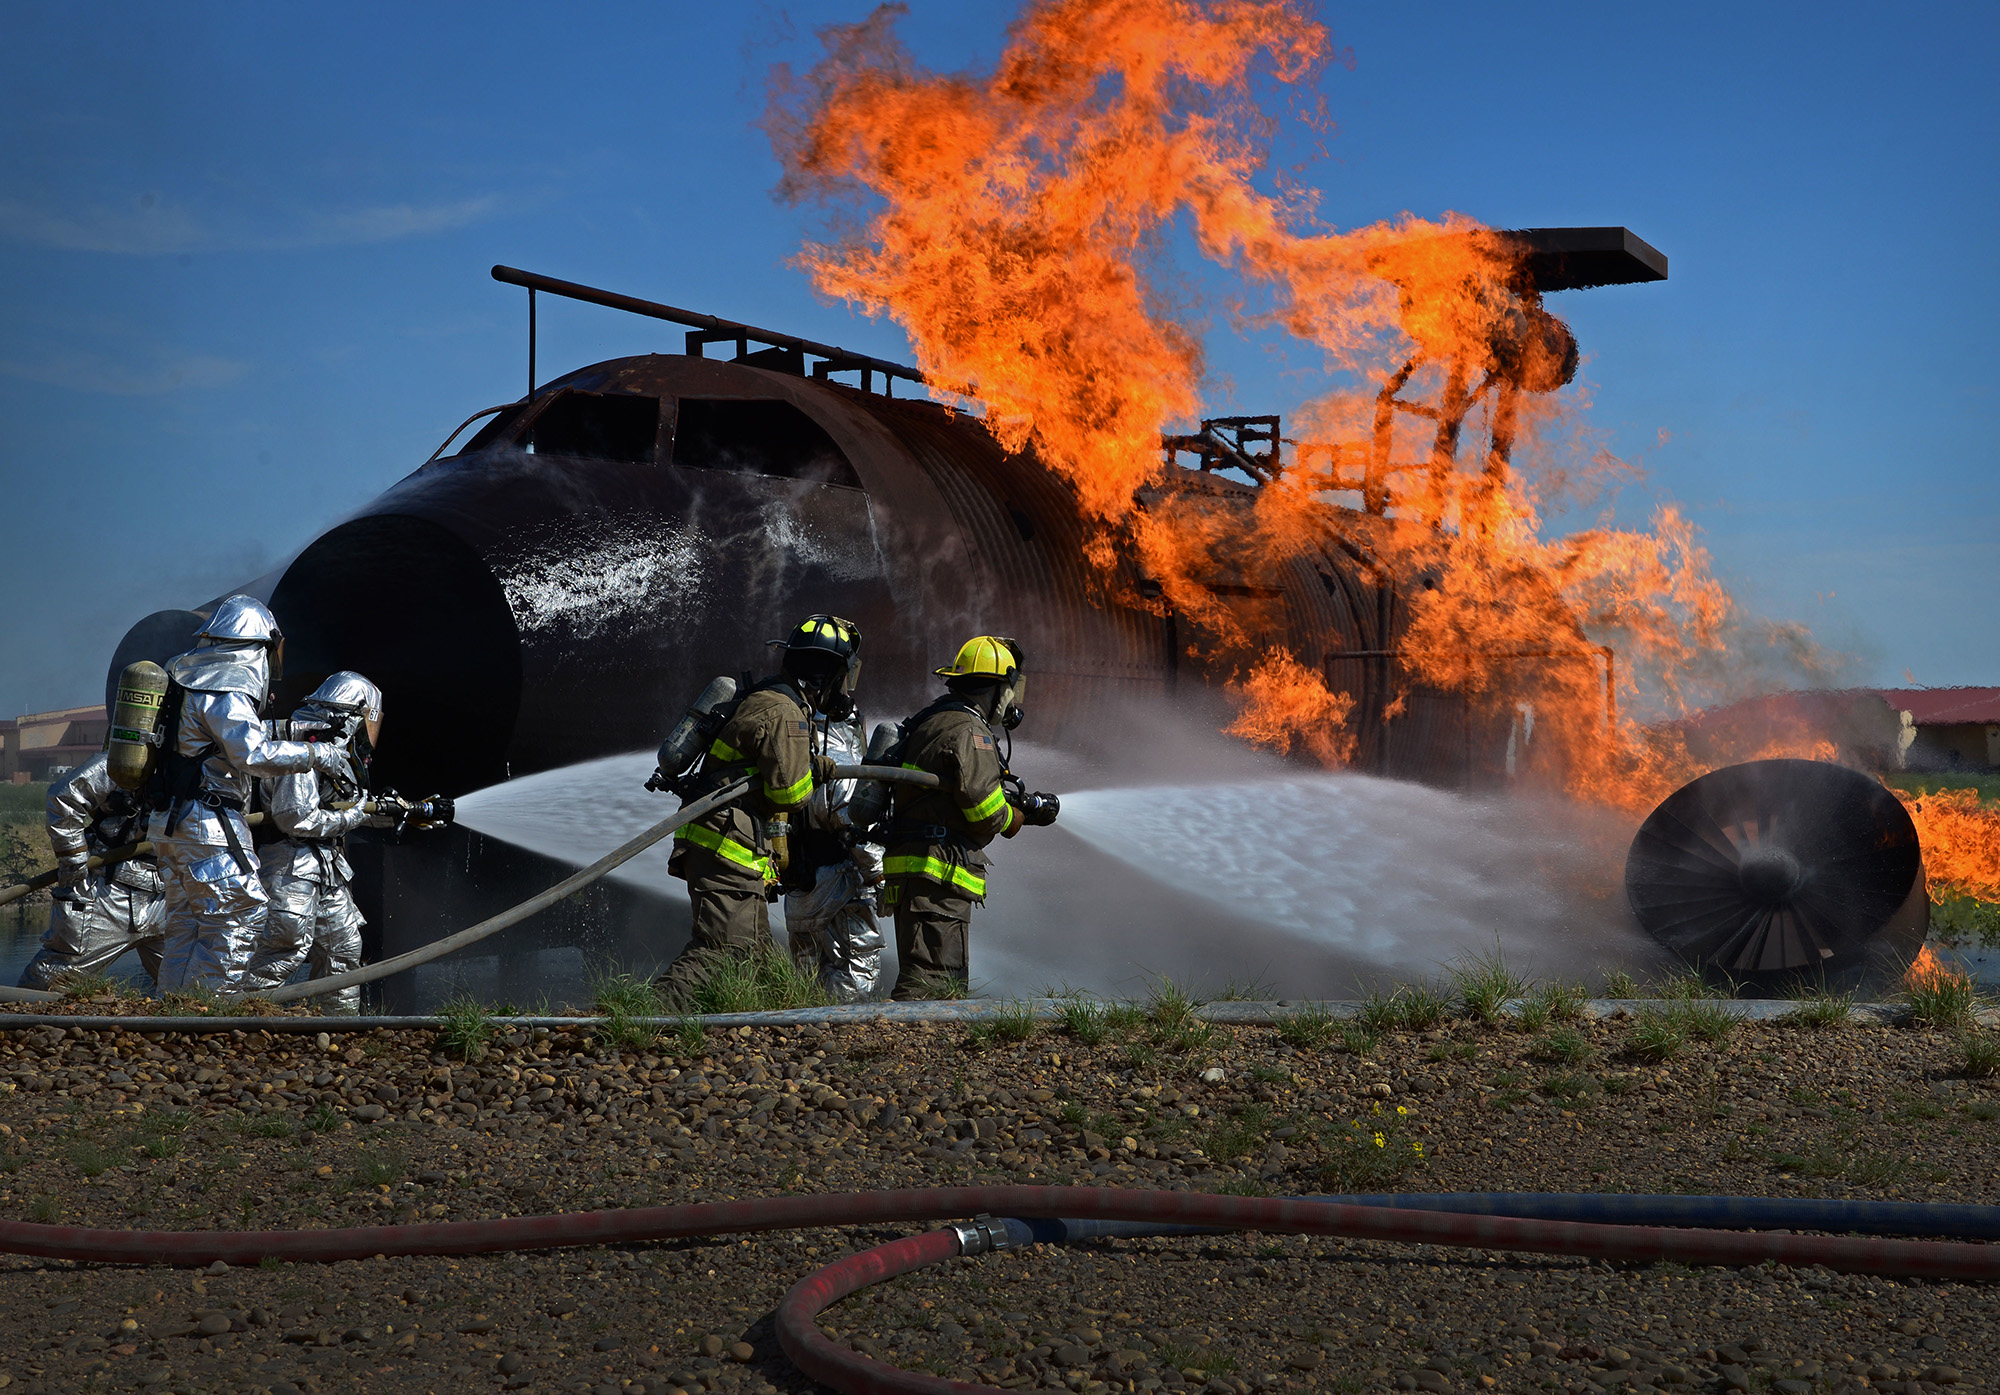 Air commandos with the 27th Special Operations Civil Engineer Squadron and Clovis, N.M., firefighters work together to put out a simulated aircraft fire during an exercise Aug. 14, 2015, at Cannon Air Force Base, N.M. (Staff Sgt. Alexx Mercer/Air Force)